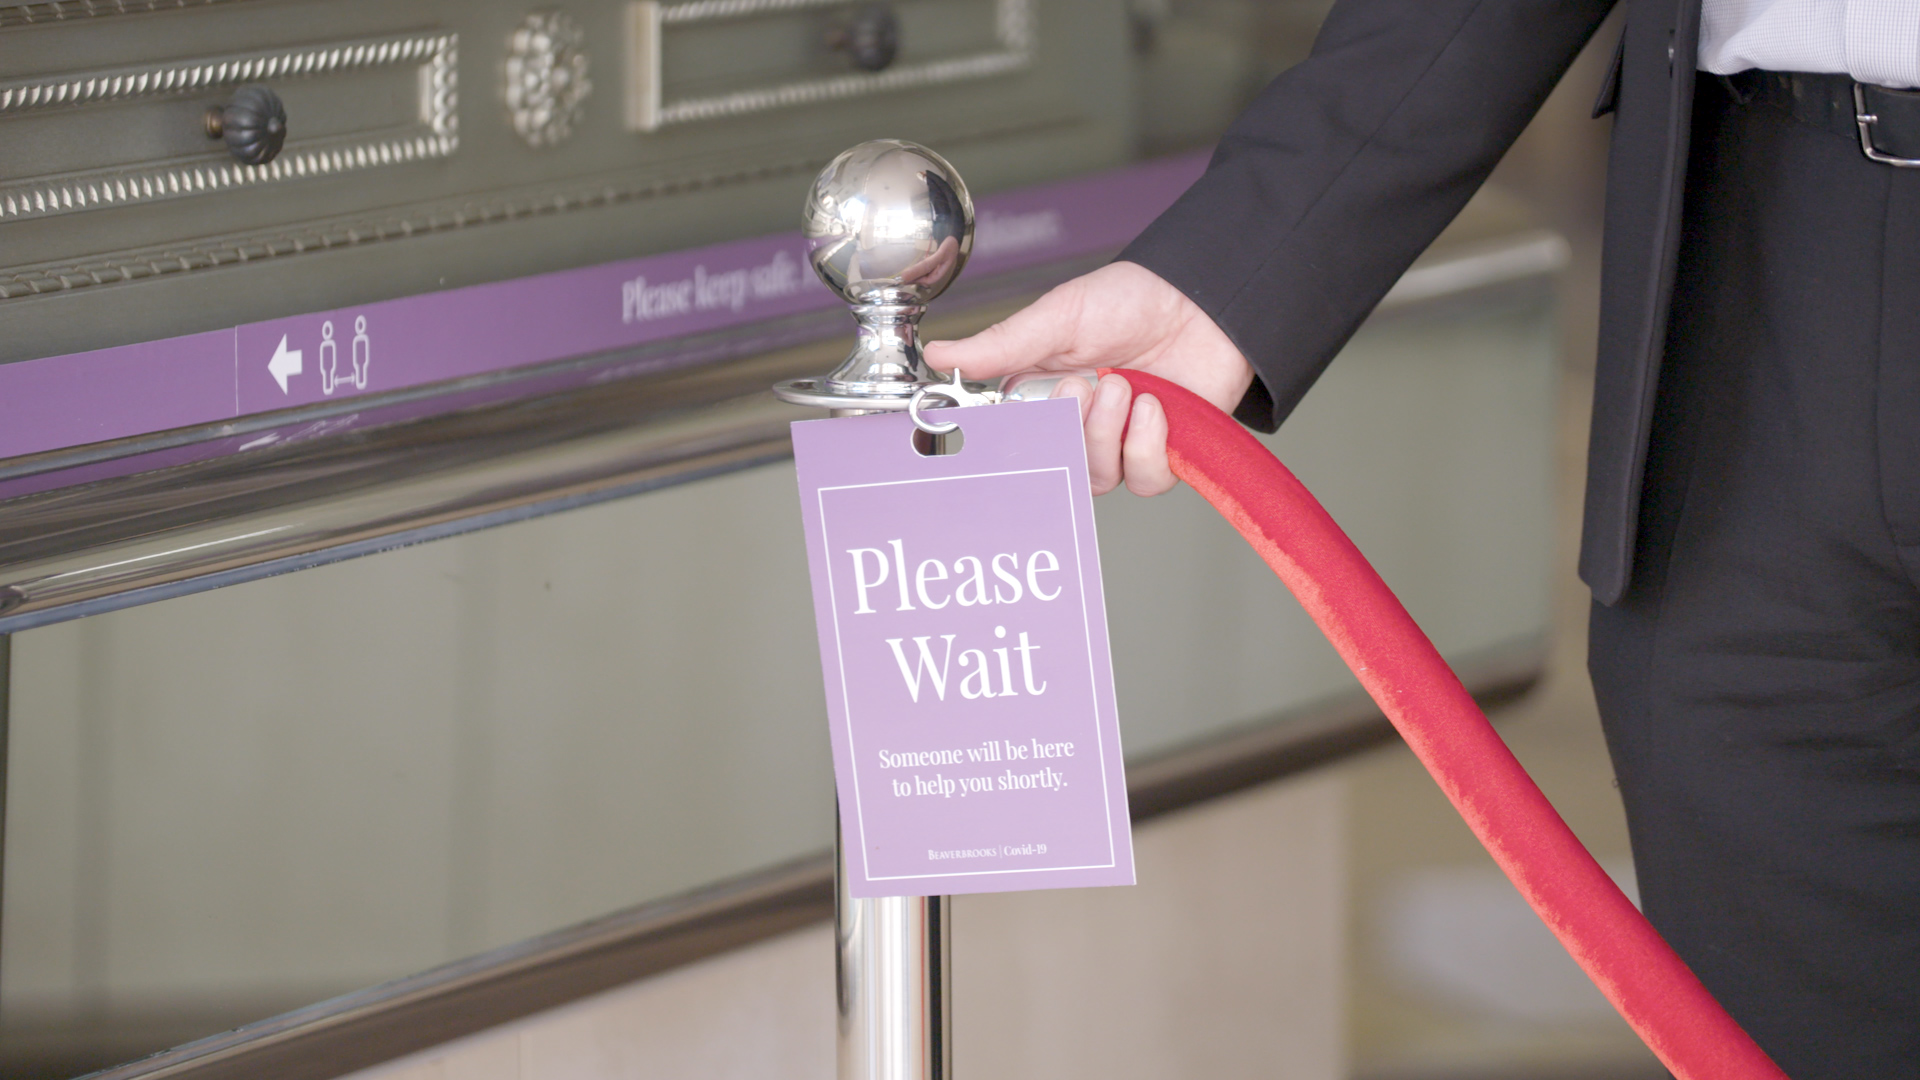 16 First look at a jewellery shopping experience as stores reopen